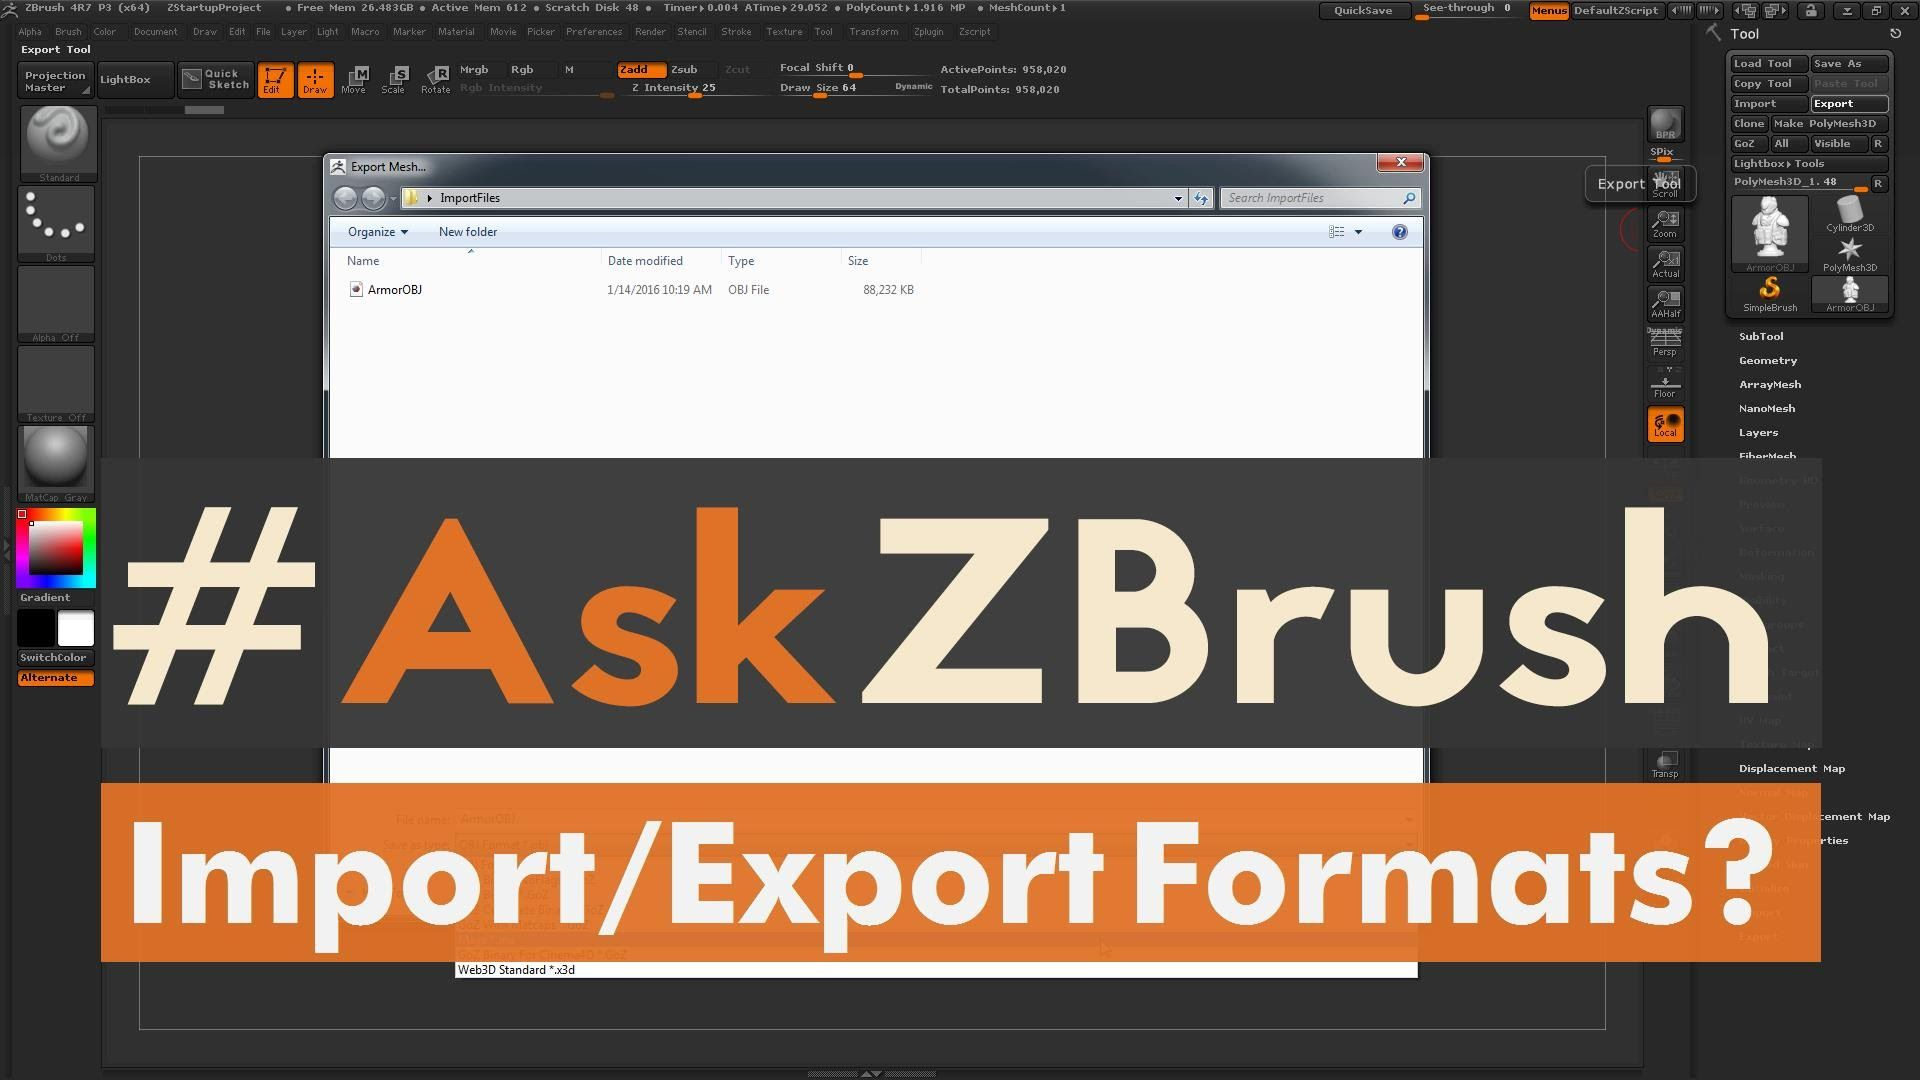 Askzbrush What File Formats Can Be Imported And Exported From